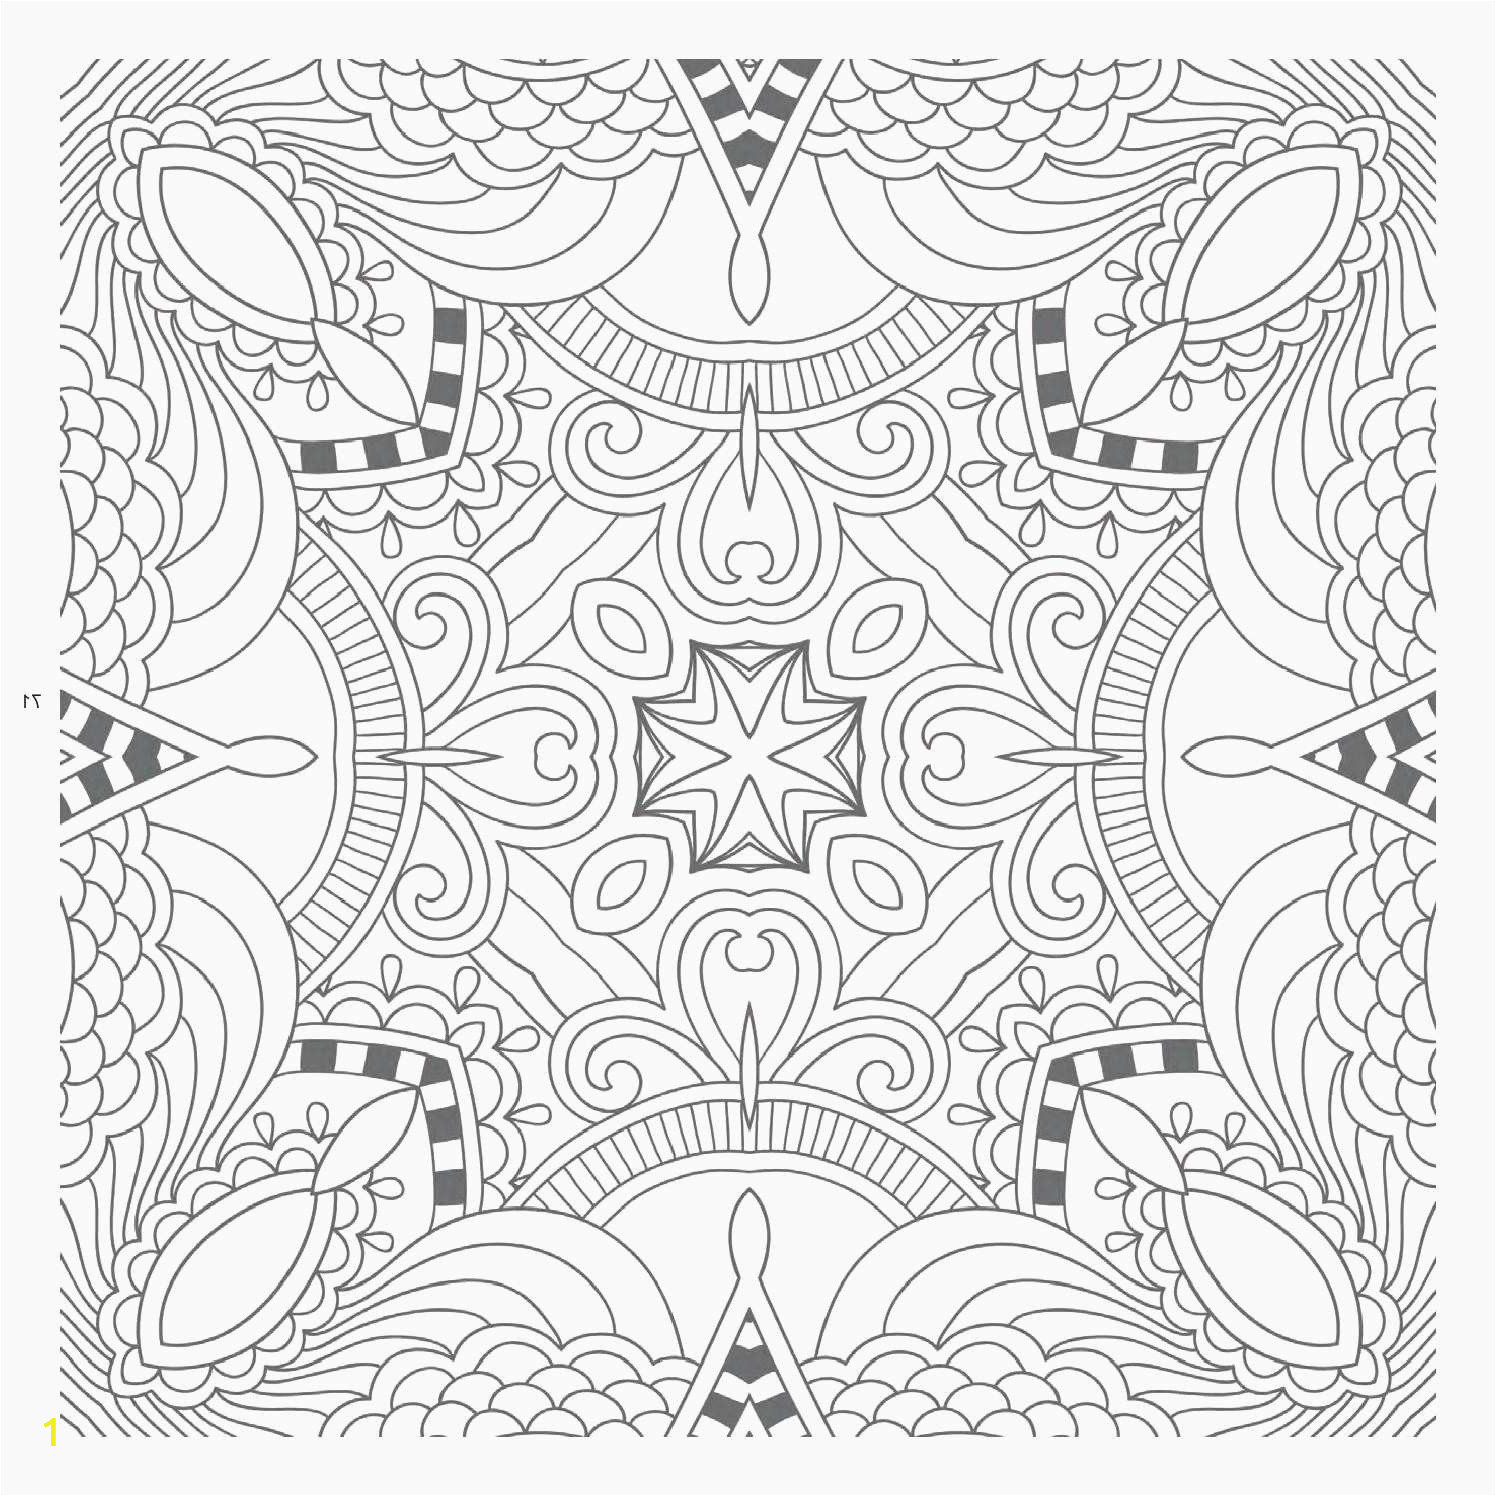 printable coloring page for adults patterns new photography patterns to color awesome printable coloring pages line new line of printable coloring page for adults patterns